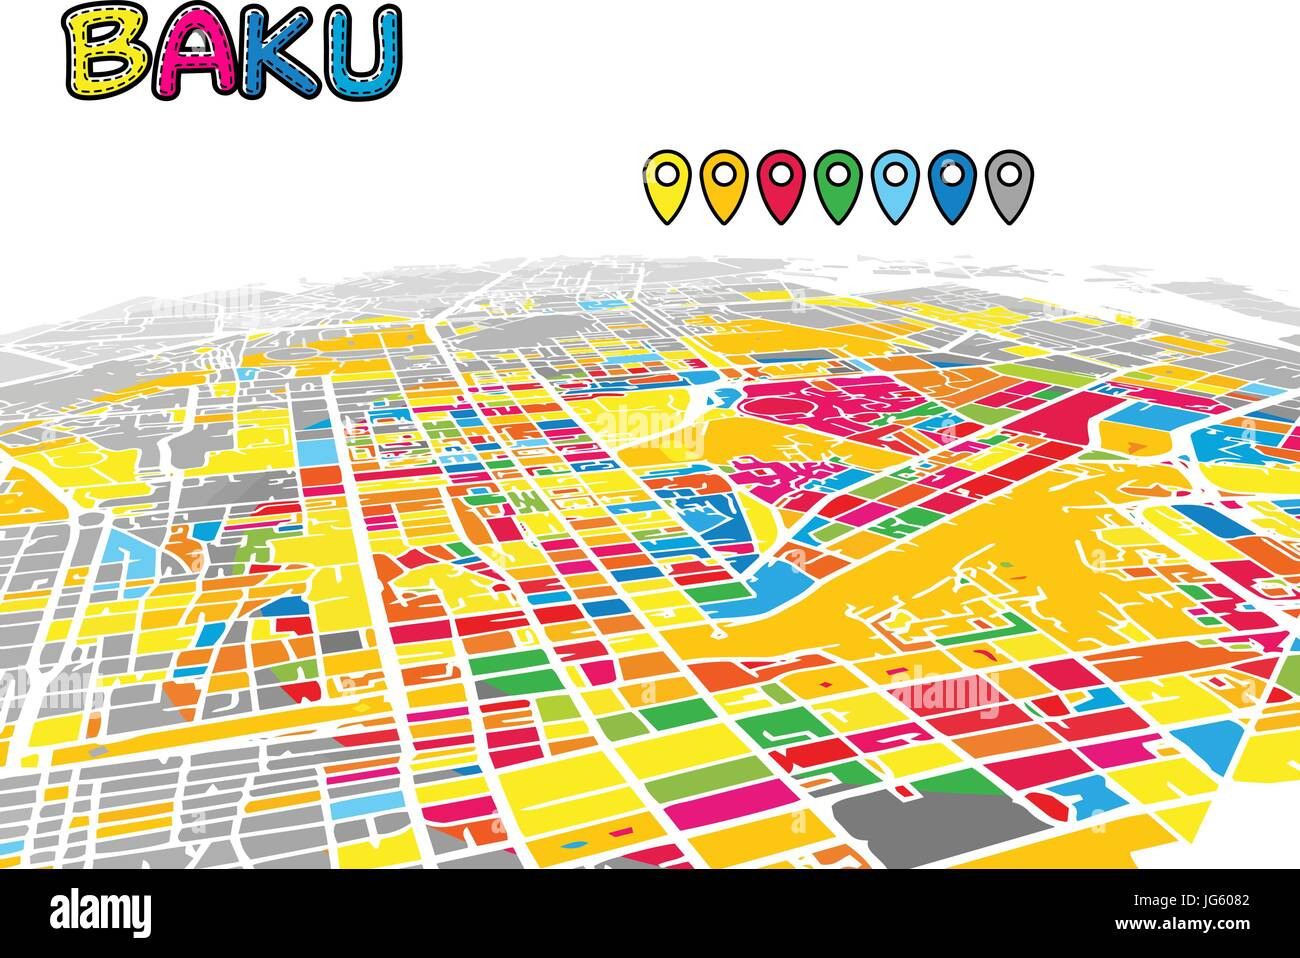 Baku, Azerbaijan, Downtown 3D Vector Map of Famous Streets. Bright foreground full of colors. White Streets, Waterways - Stock Vector